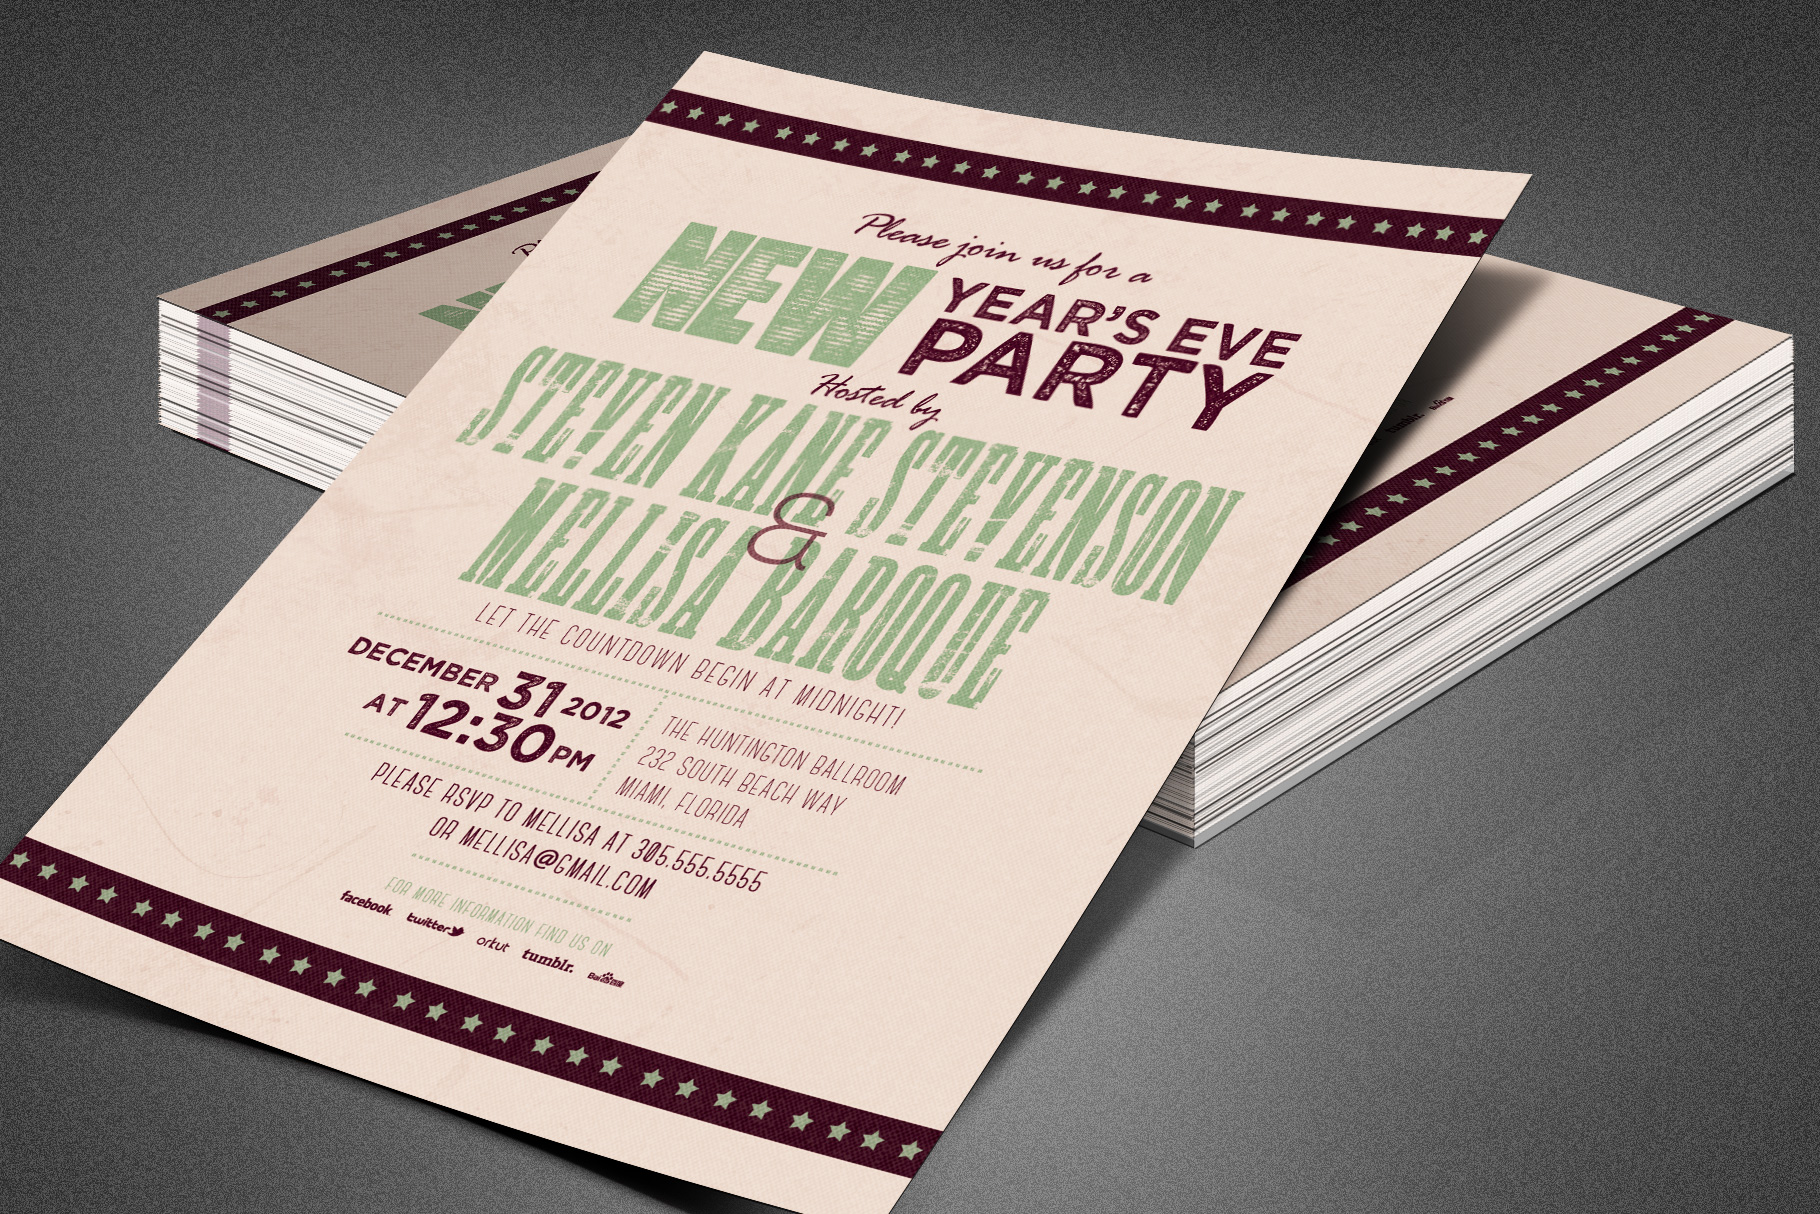 Retro New Year Party Invite Card Template example image 7